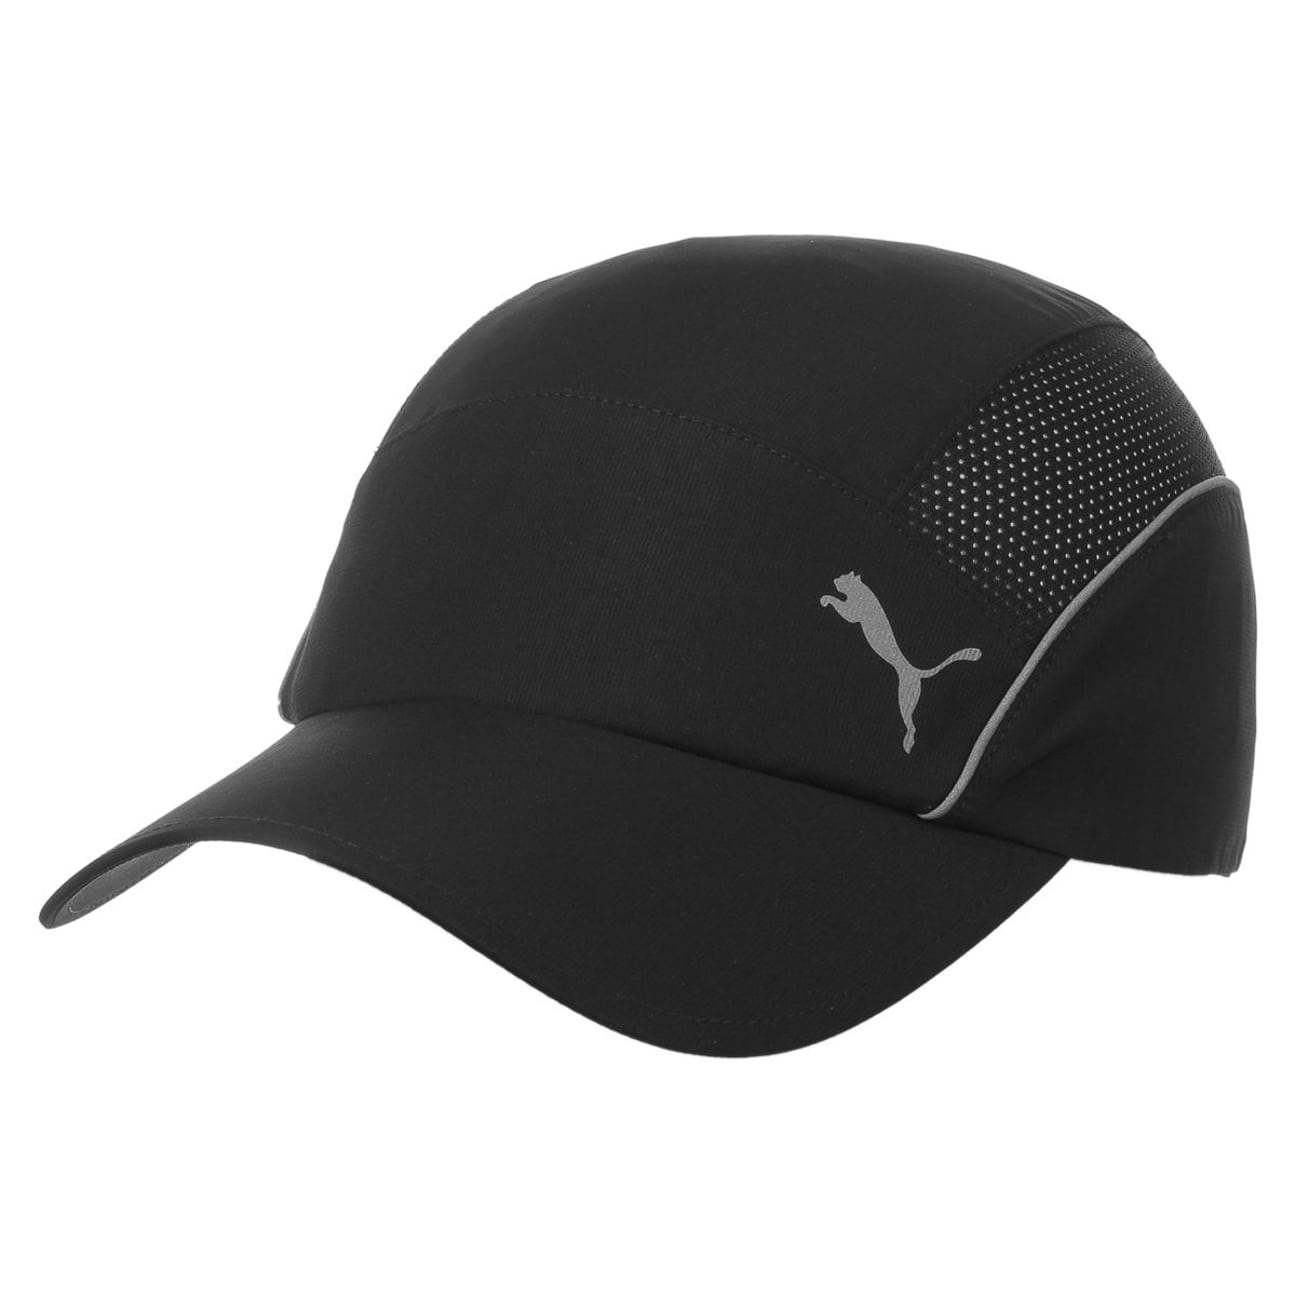 cce2655a05f ... low price cell running cap iv by puma black 6 7d74e bbd43